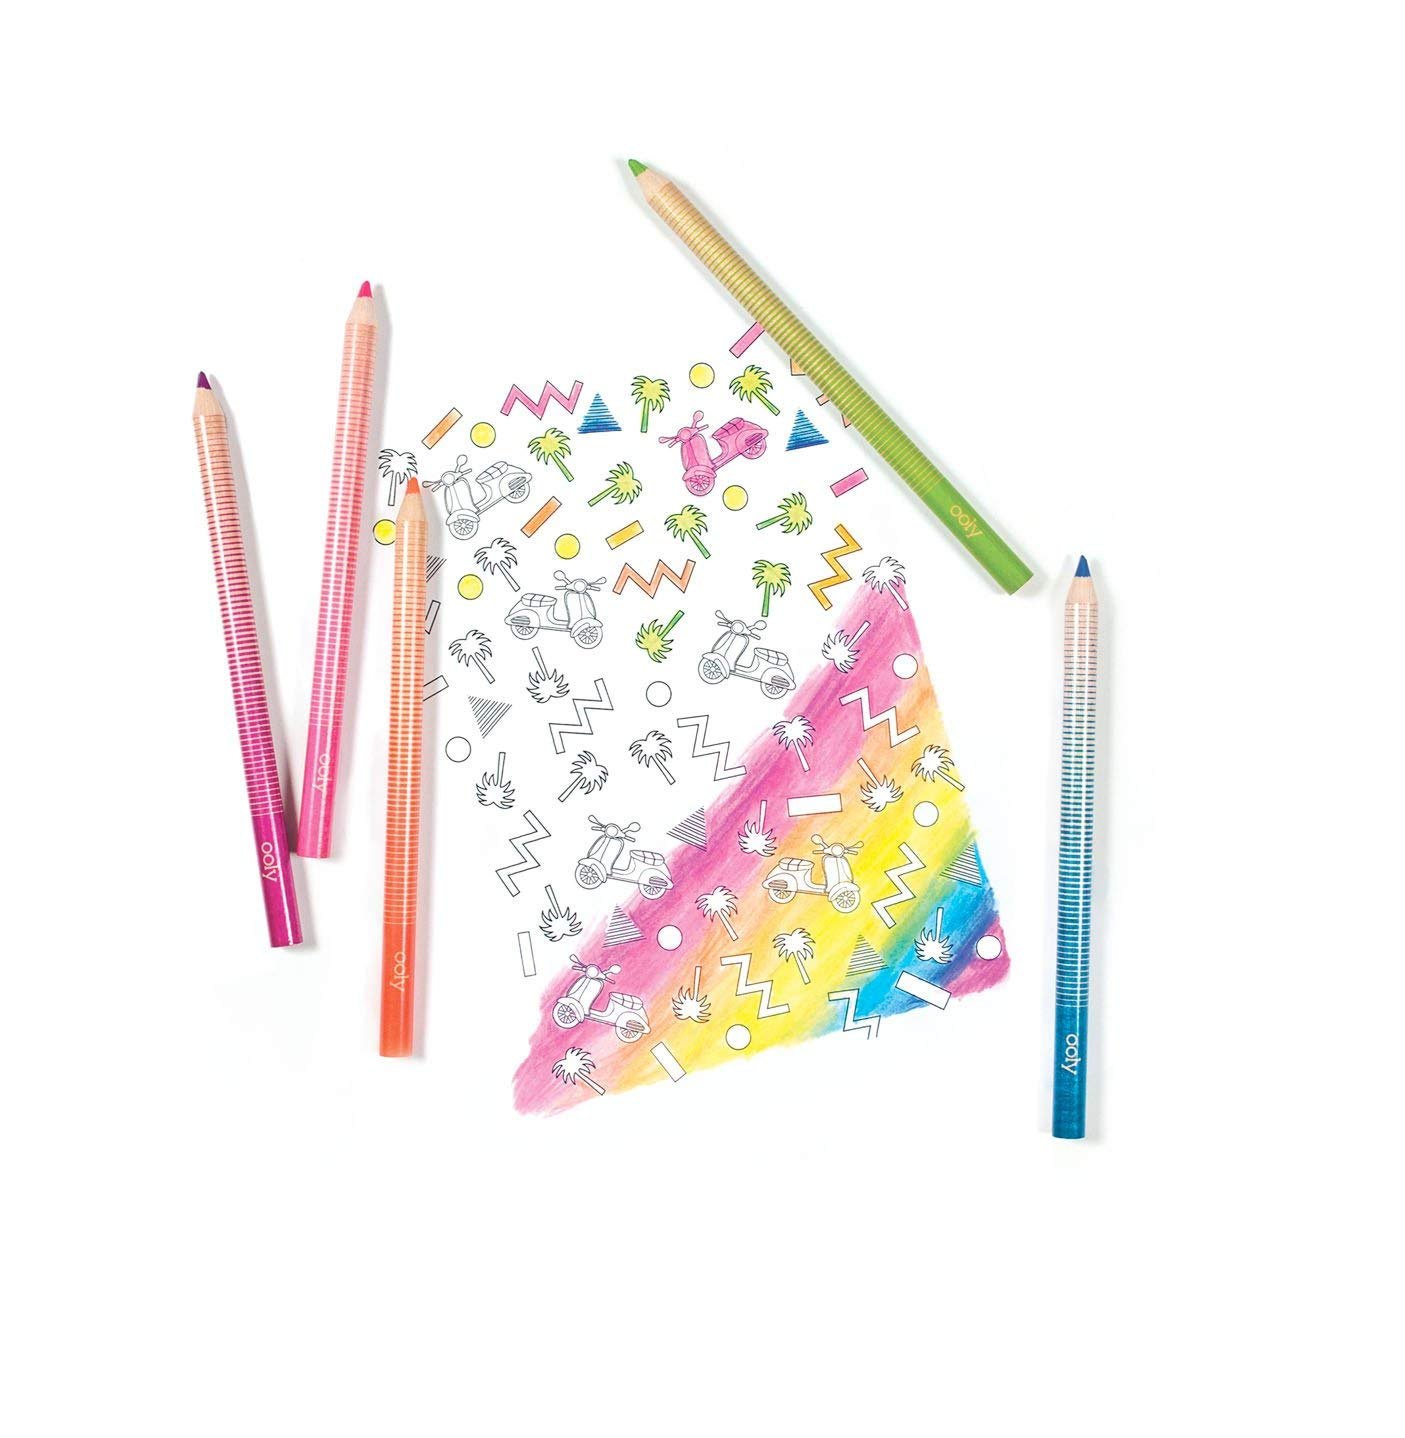 Ooly Jumbo Brights Neon Colored Pencils